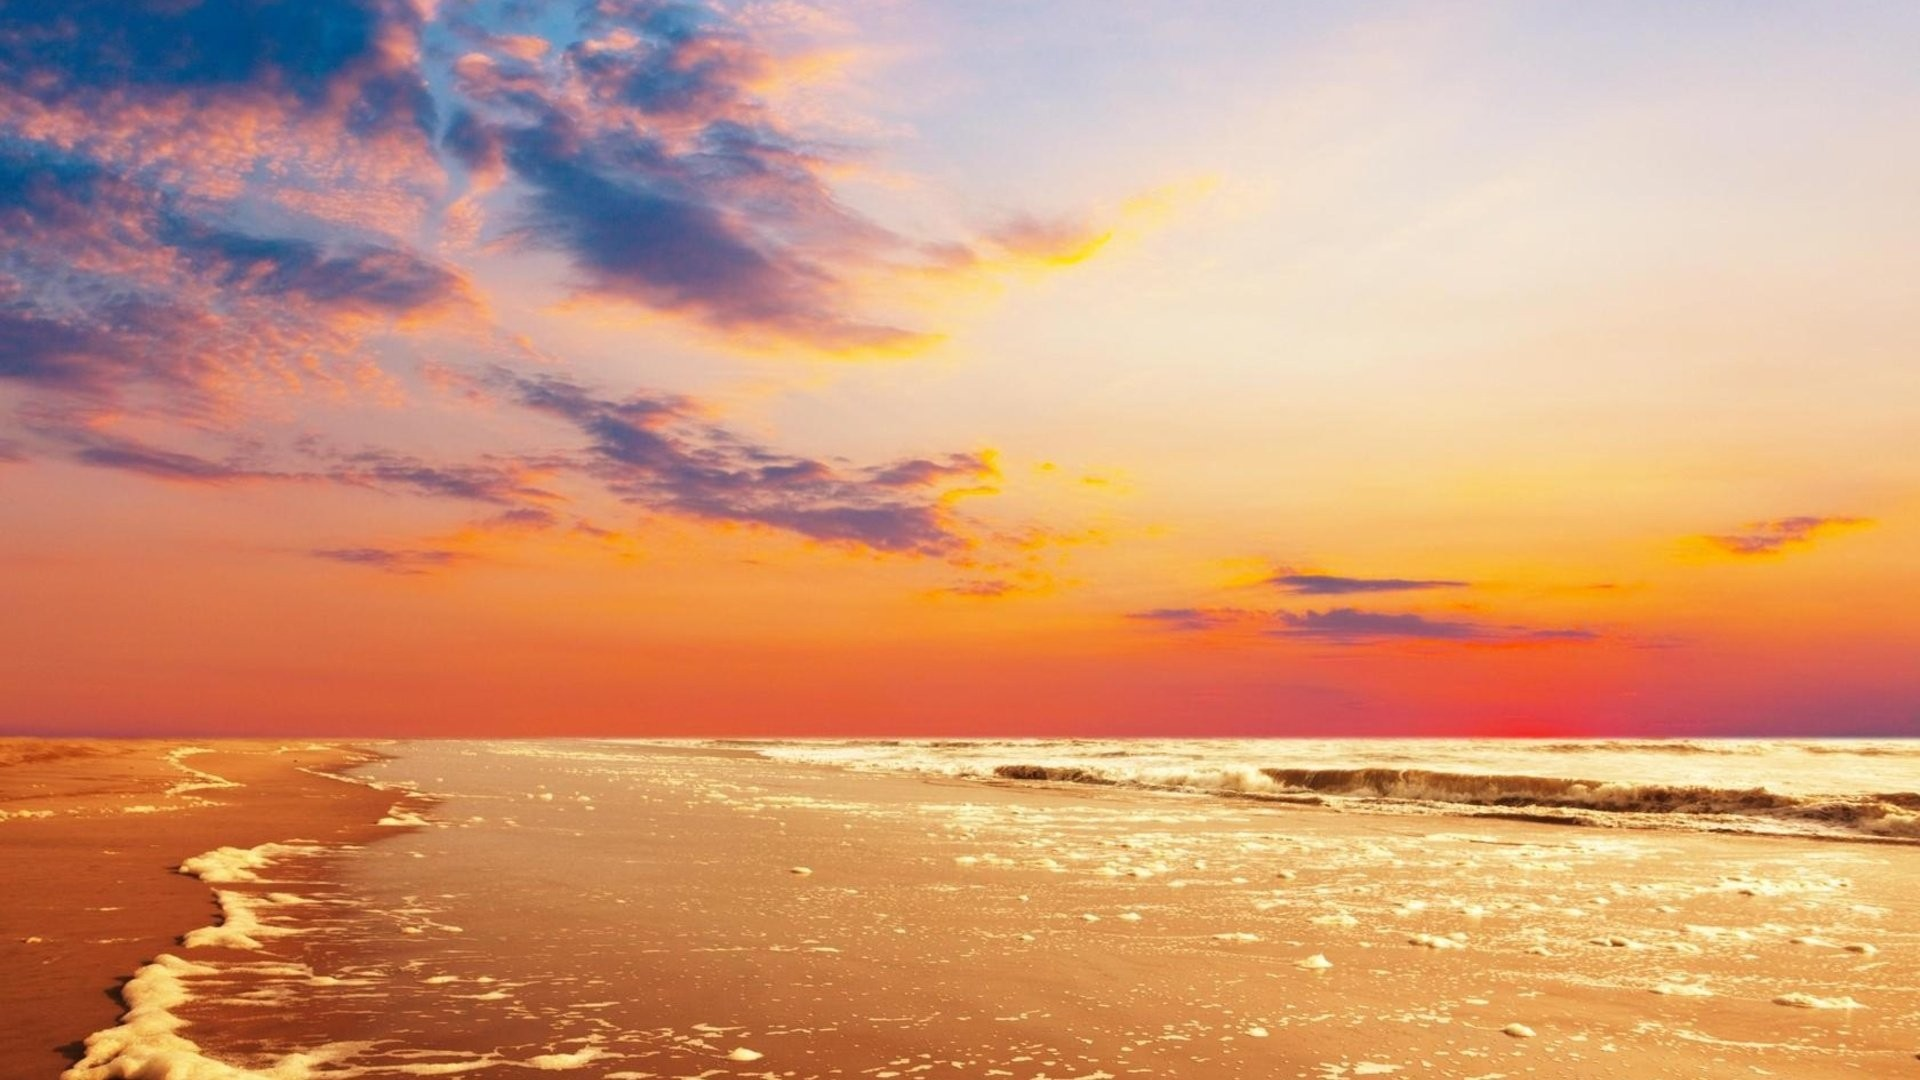 Download, Mobile, High Resolution, Clouds, Sea, Beauty,hd - High Resolution Sunset Sky , HD Wallpaper & Backgrounds